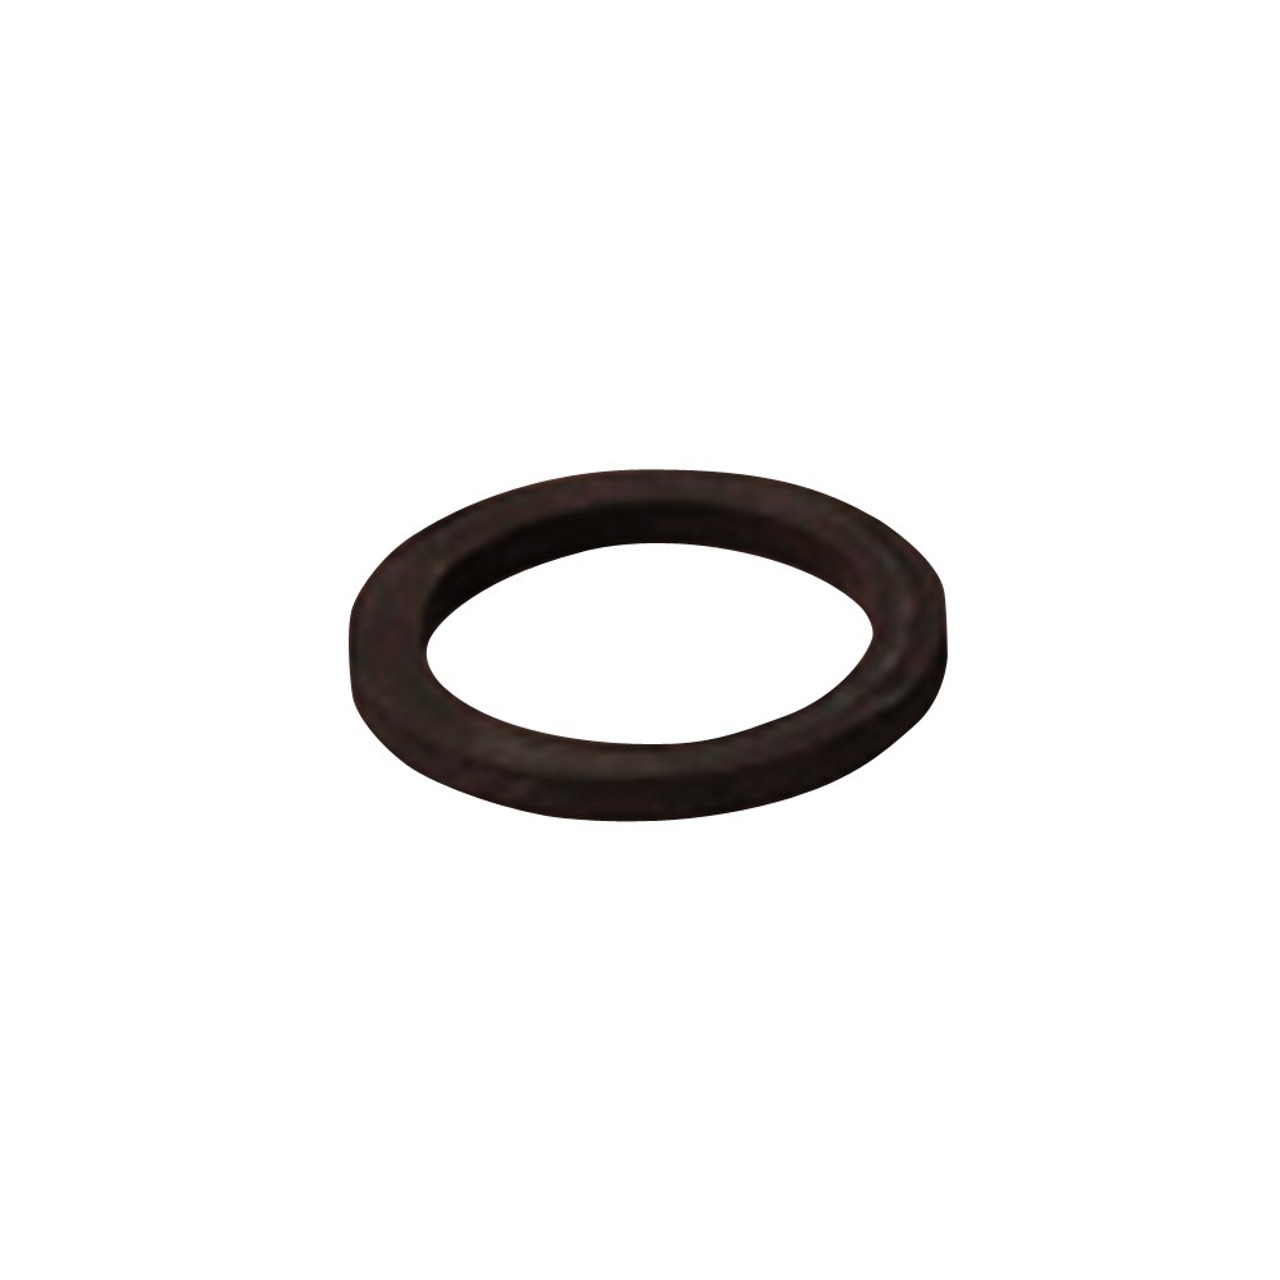 Imer Spare Rubber Material Hose Seal Gasket For 65dia Hoses